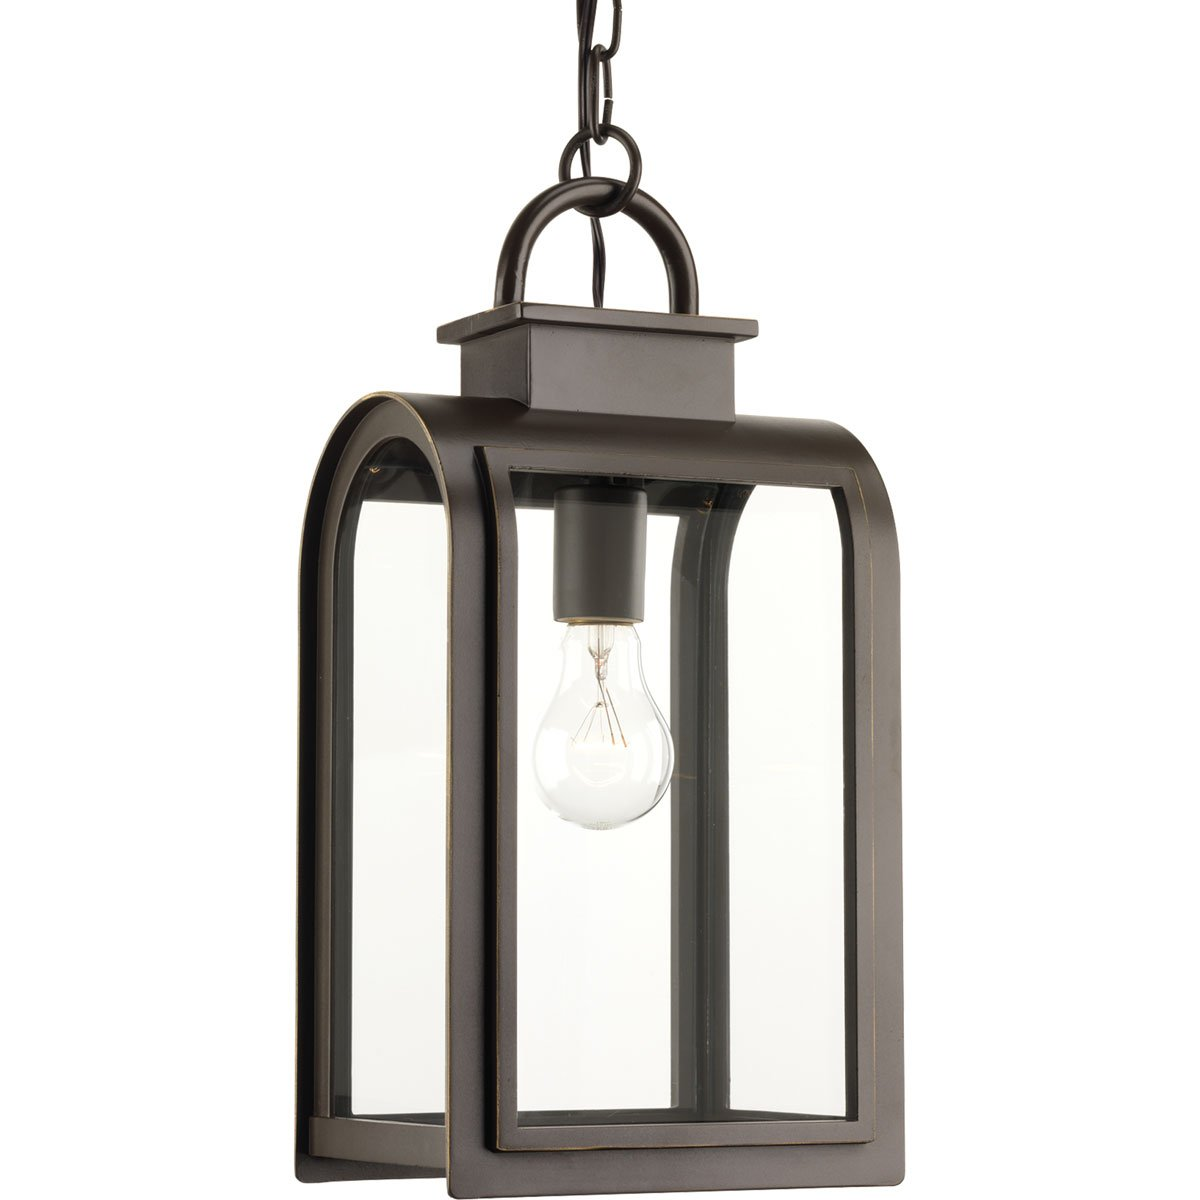 Progress Lighting P6531-108 Traditional/Casual 1-100W Med Hanging Lantern, Oil Rubbed Bronze